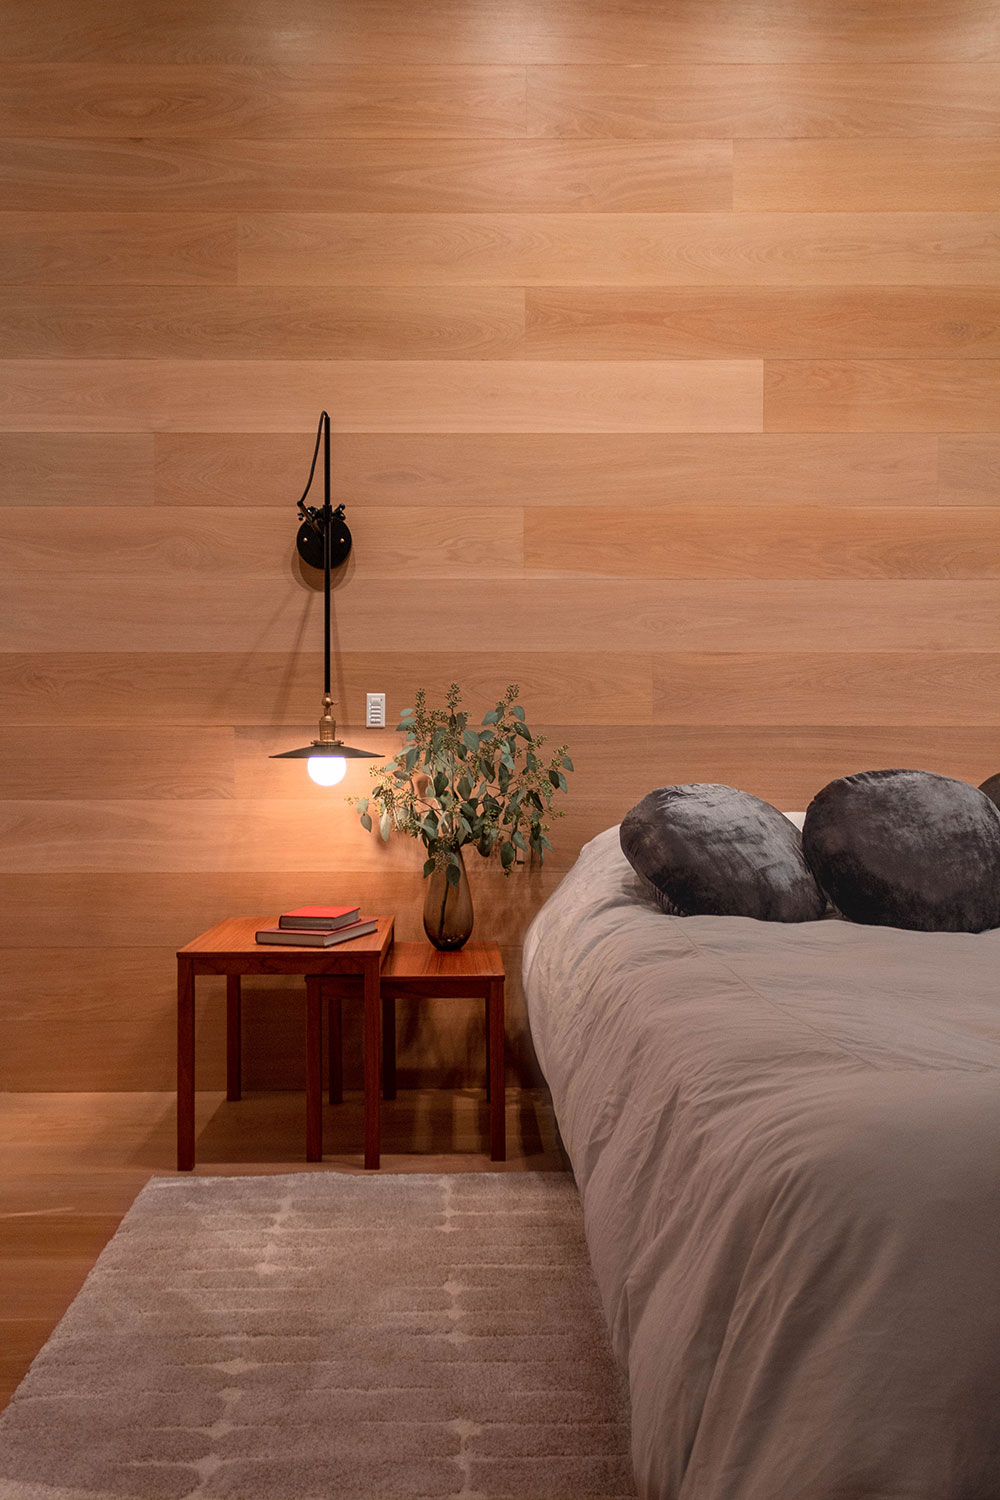 Detail of the bedside tables in the master bedroom of the Loft renovation project in Chelsea, New York City designed by the architecture studio Danny Forster & Architecture